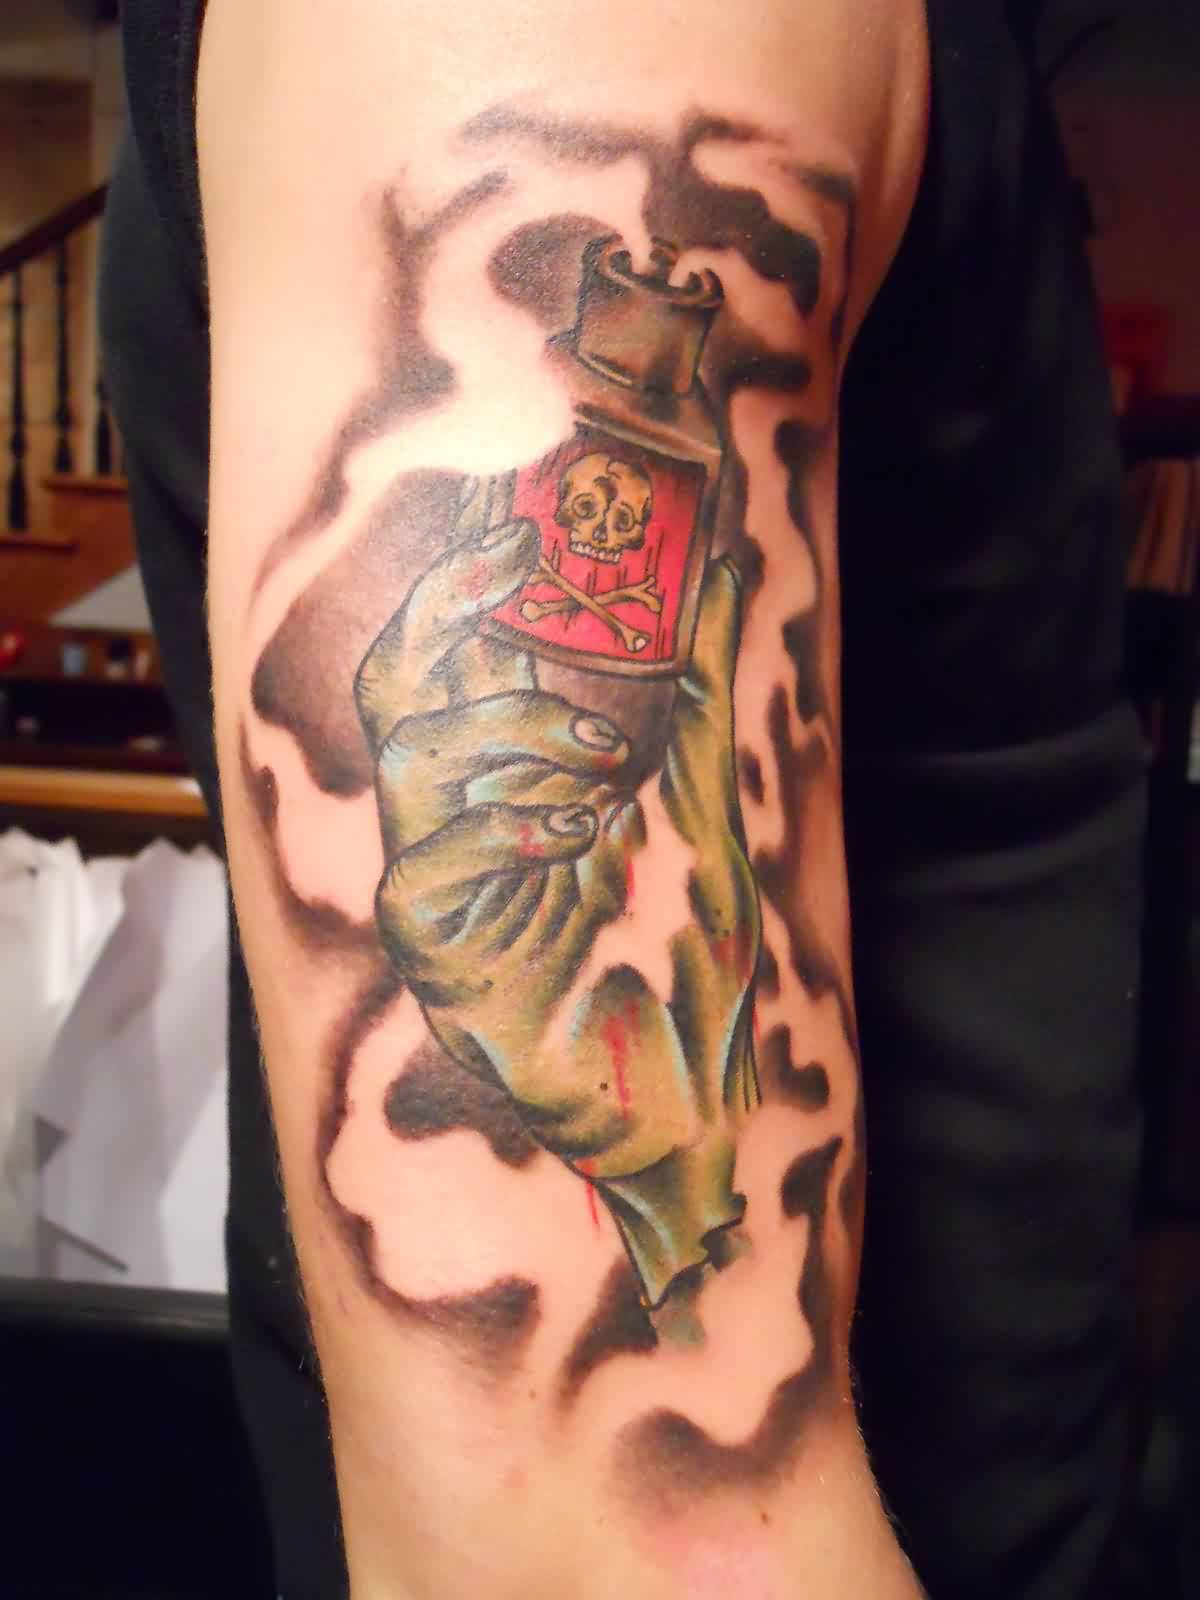 Flames From Bottle Of Poison Tattoo